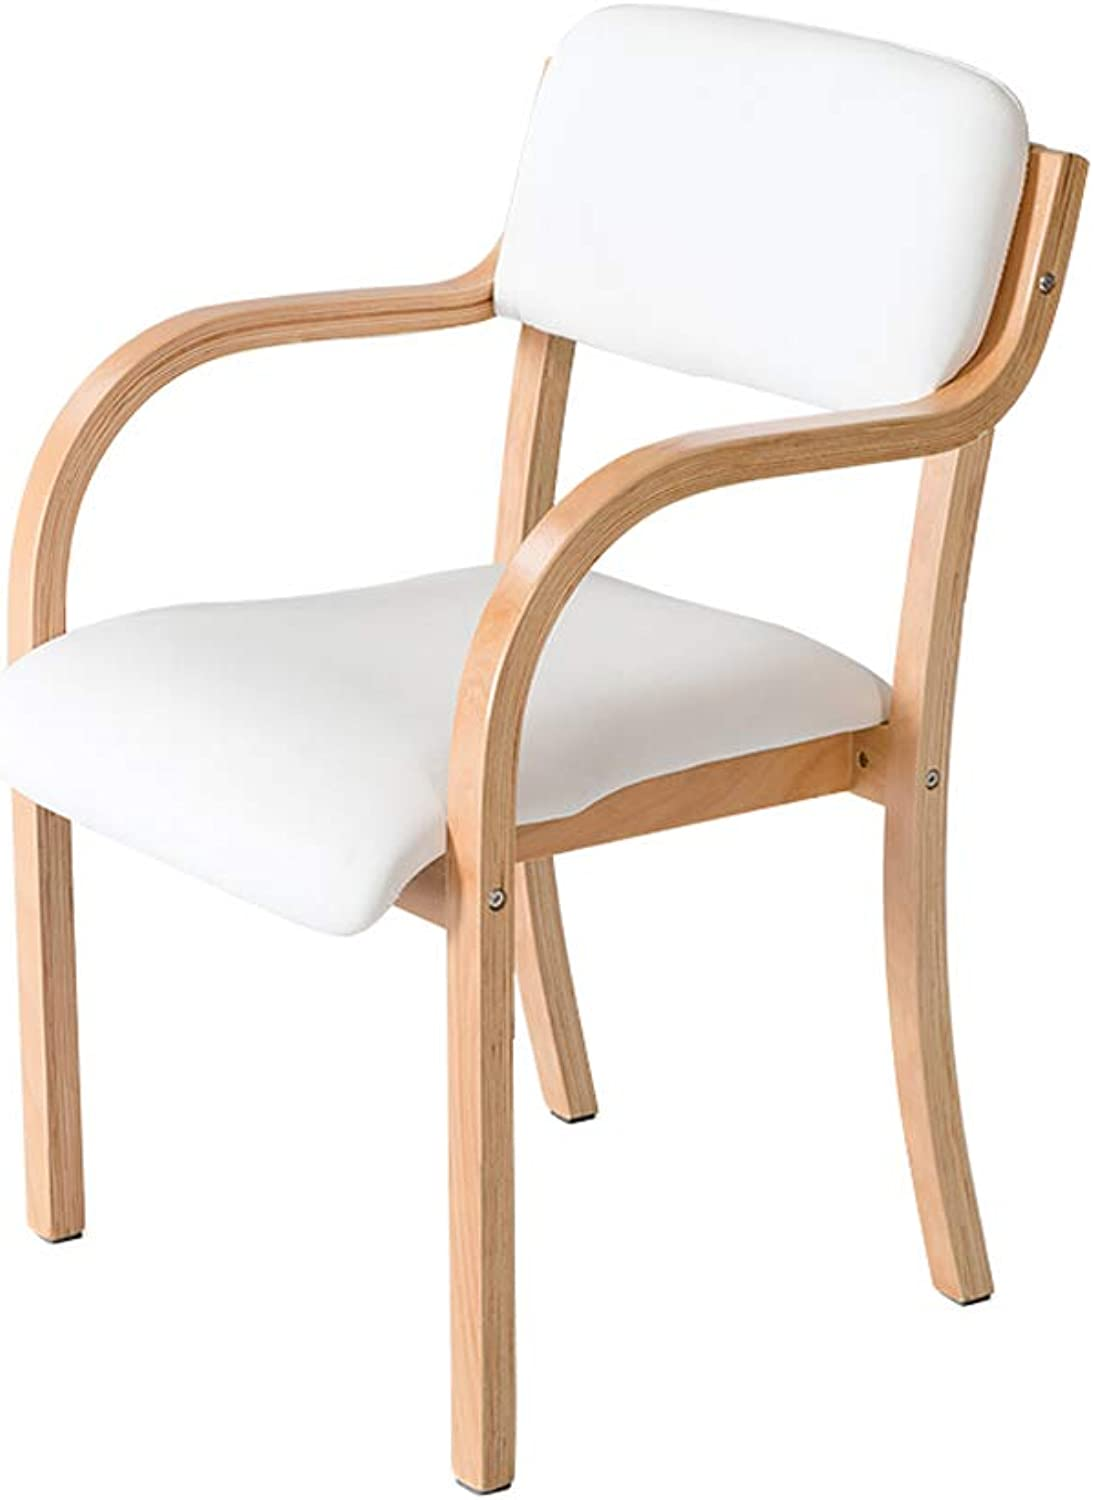 Solid Wood Dining Chair Wooden with Armrests Modern Minimalist Dining Chair Dining Table and Chairs Multicolor (color   C)